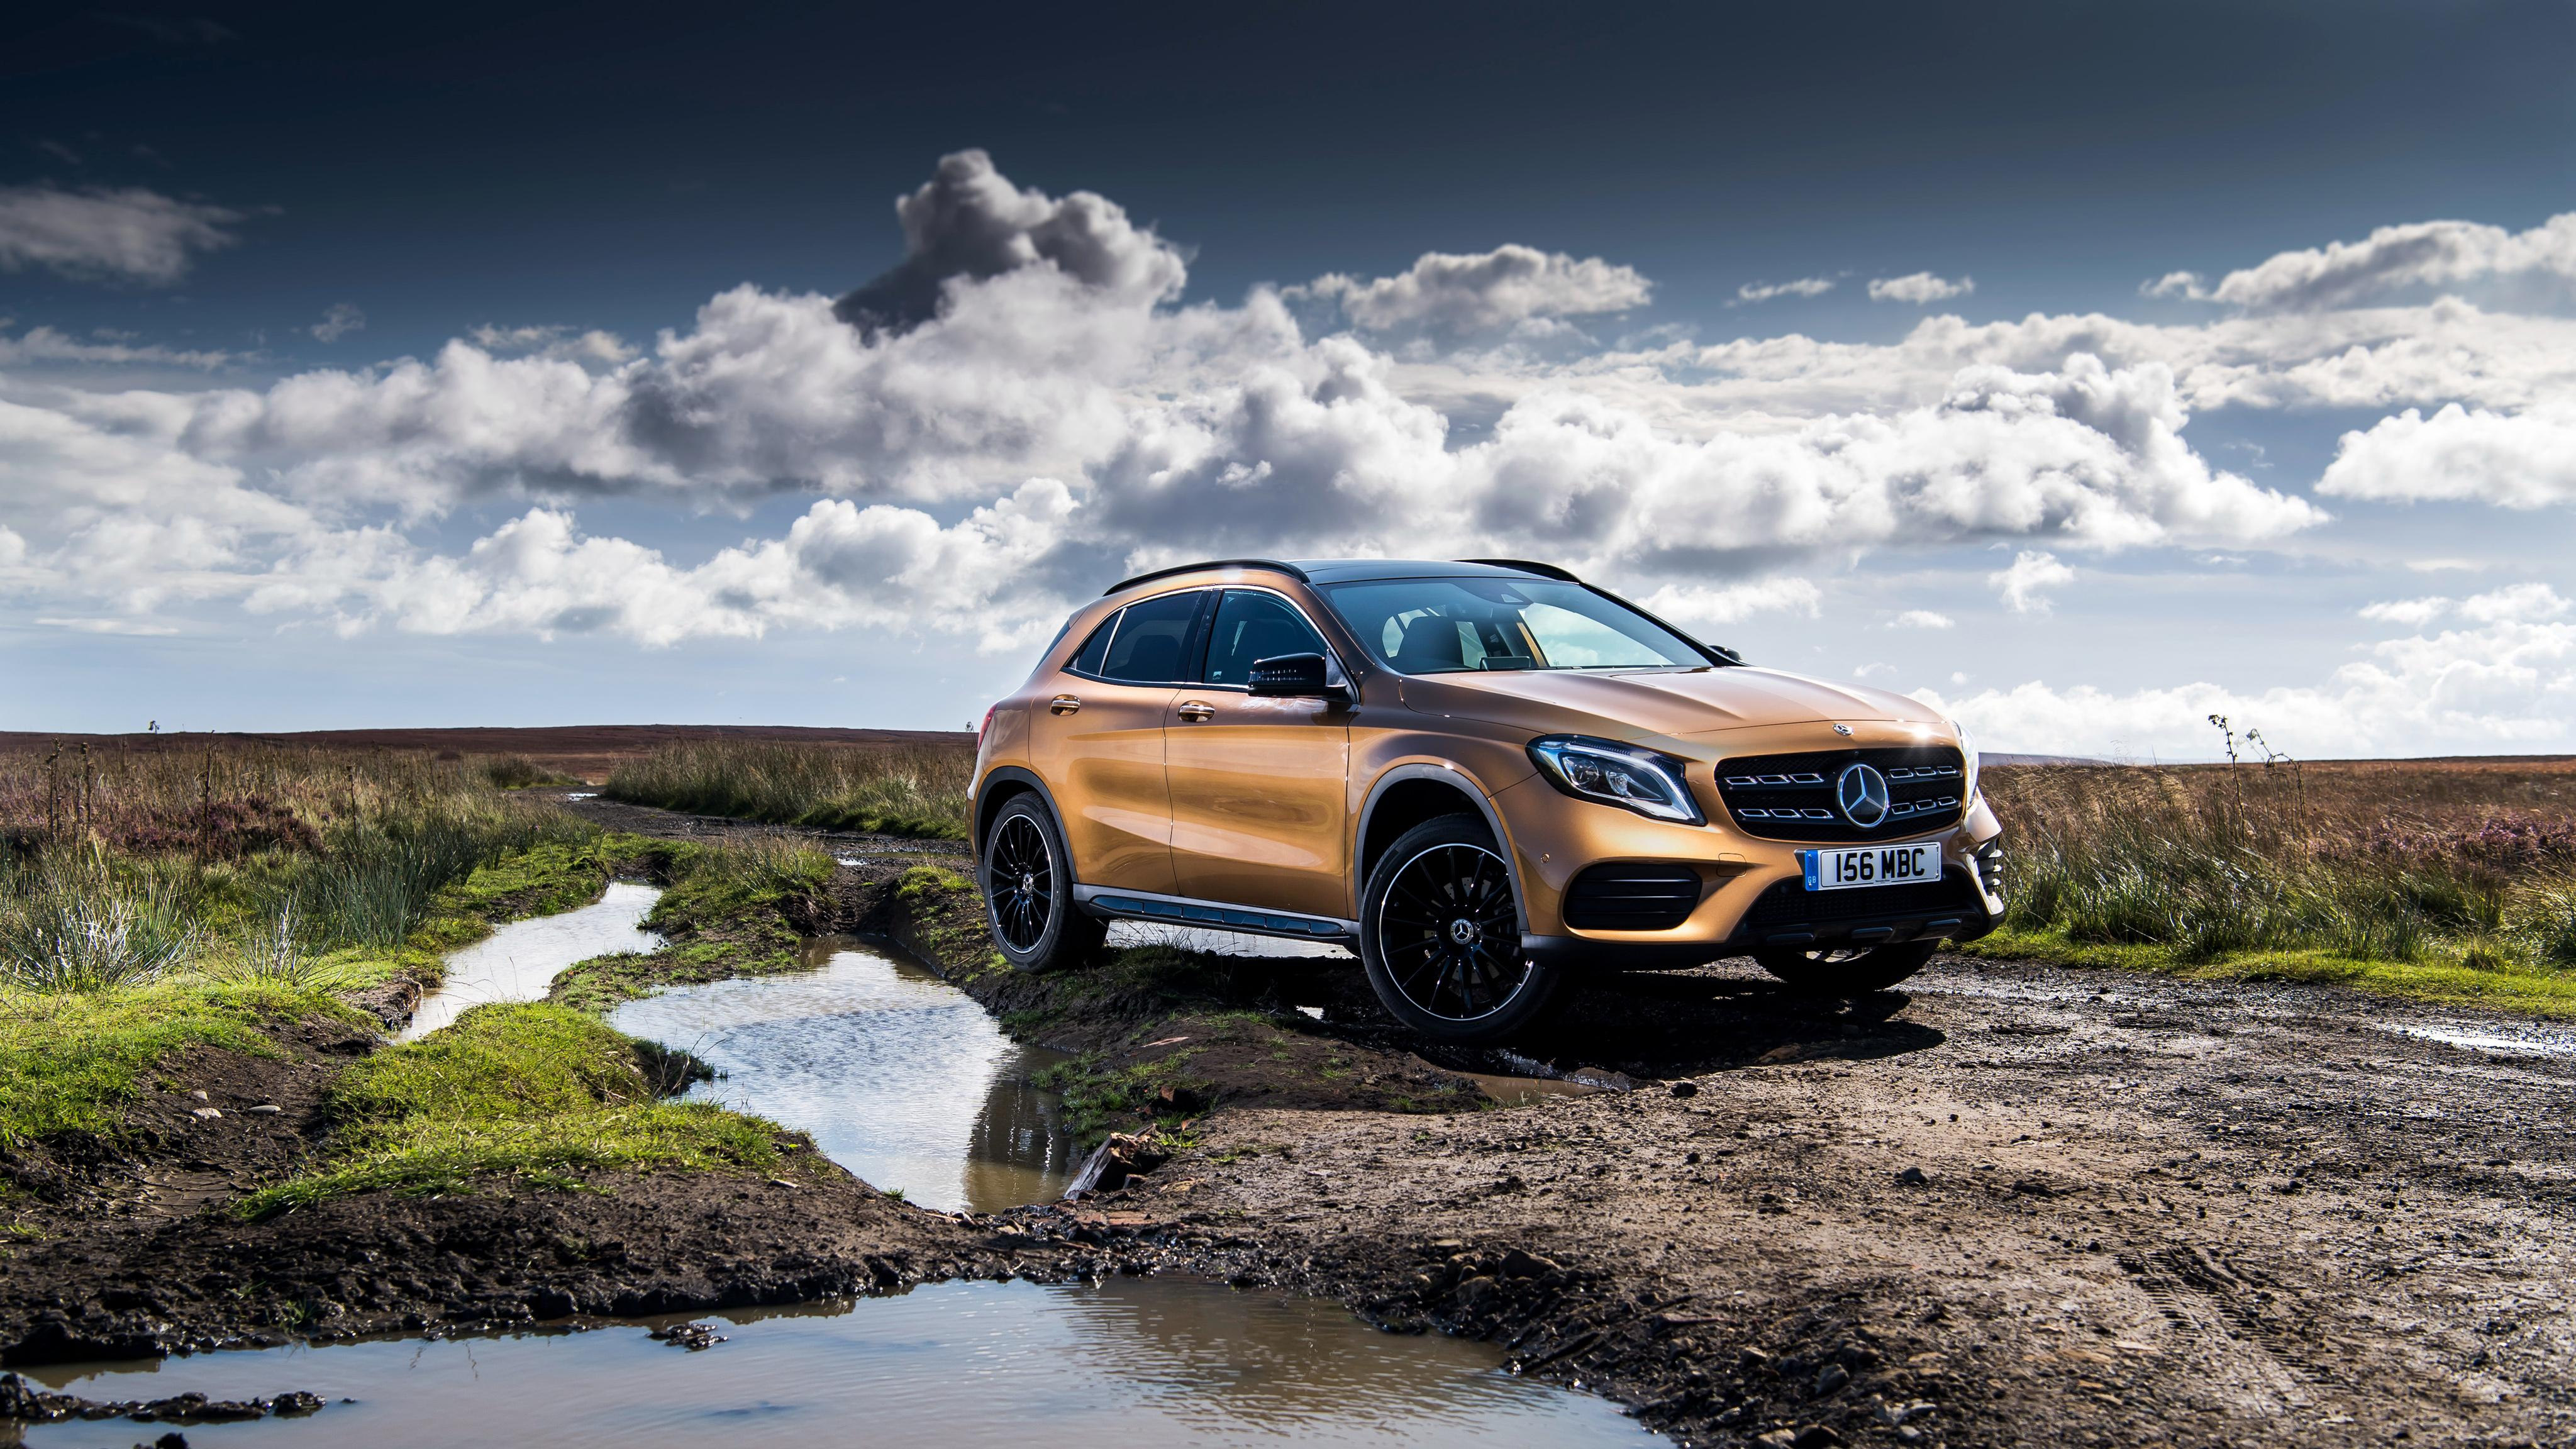 2017 Mercedes Benz GLA 220d 4MATIC AMG Line 4K Wallpaper | HD Car ...